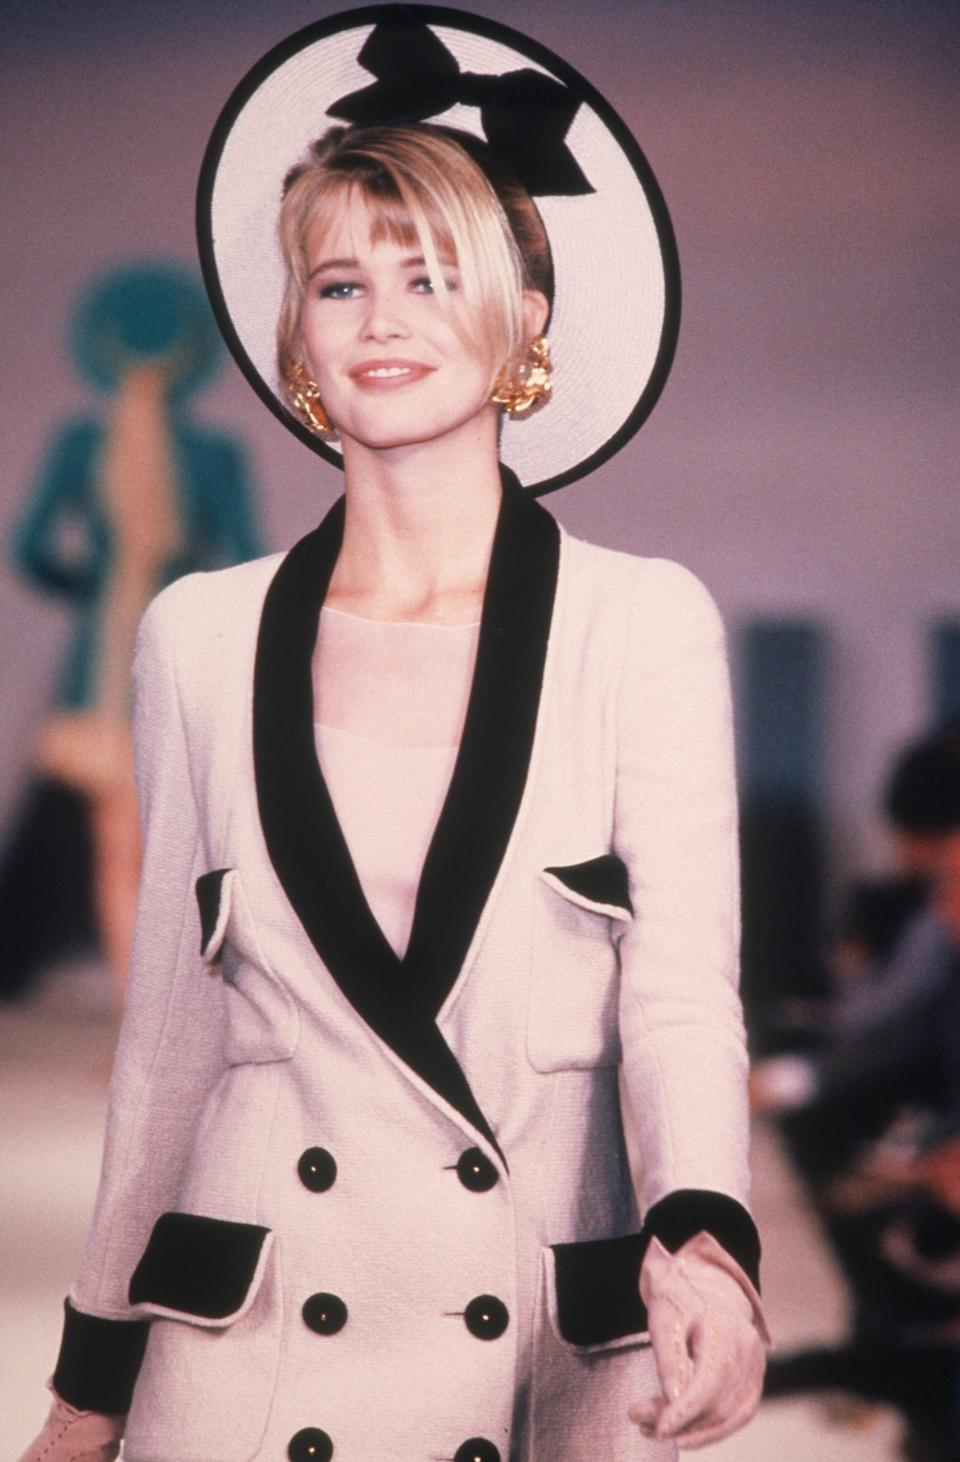 Claudia Schiffer in her first Chanel Couture catwalk show in 1990